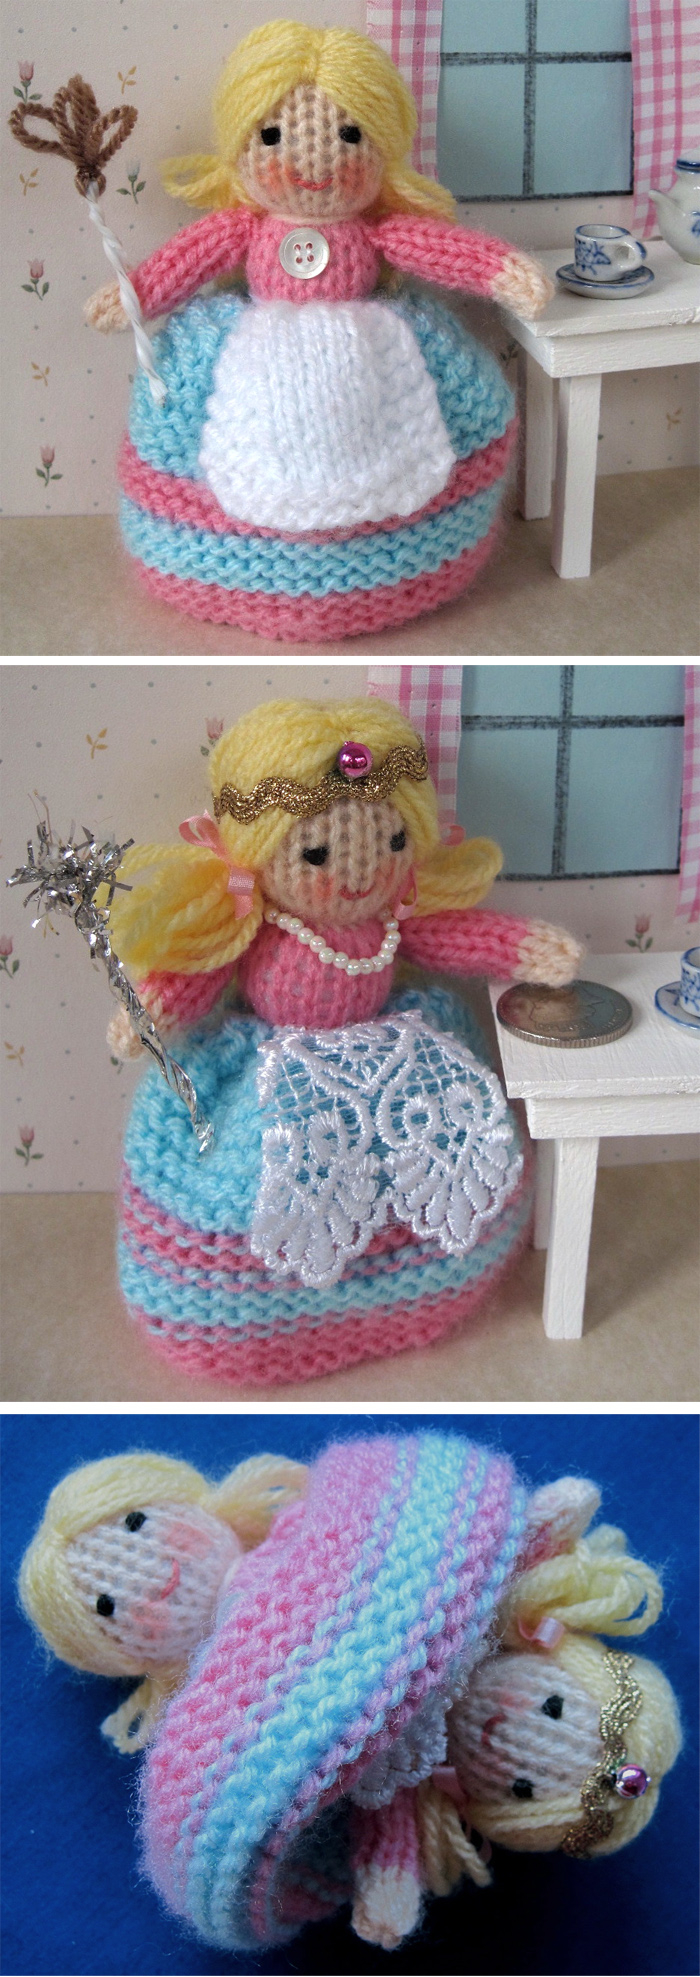 Free Knitting Patterns For Dolls Hats Fairy Tale And Storybook Knitting Patterns In The Loop Knitting